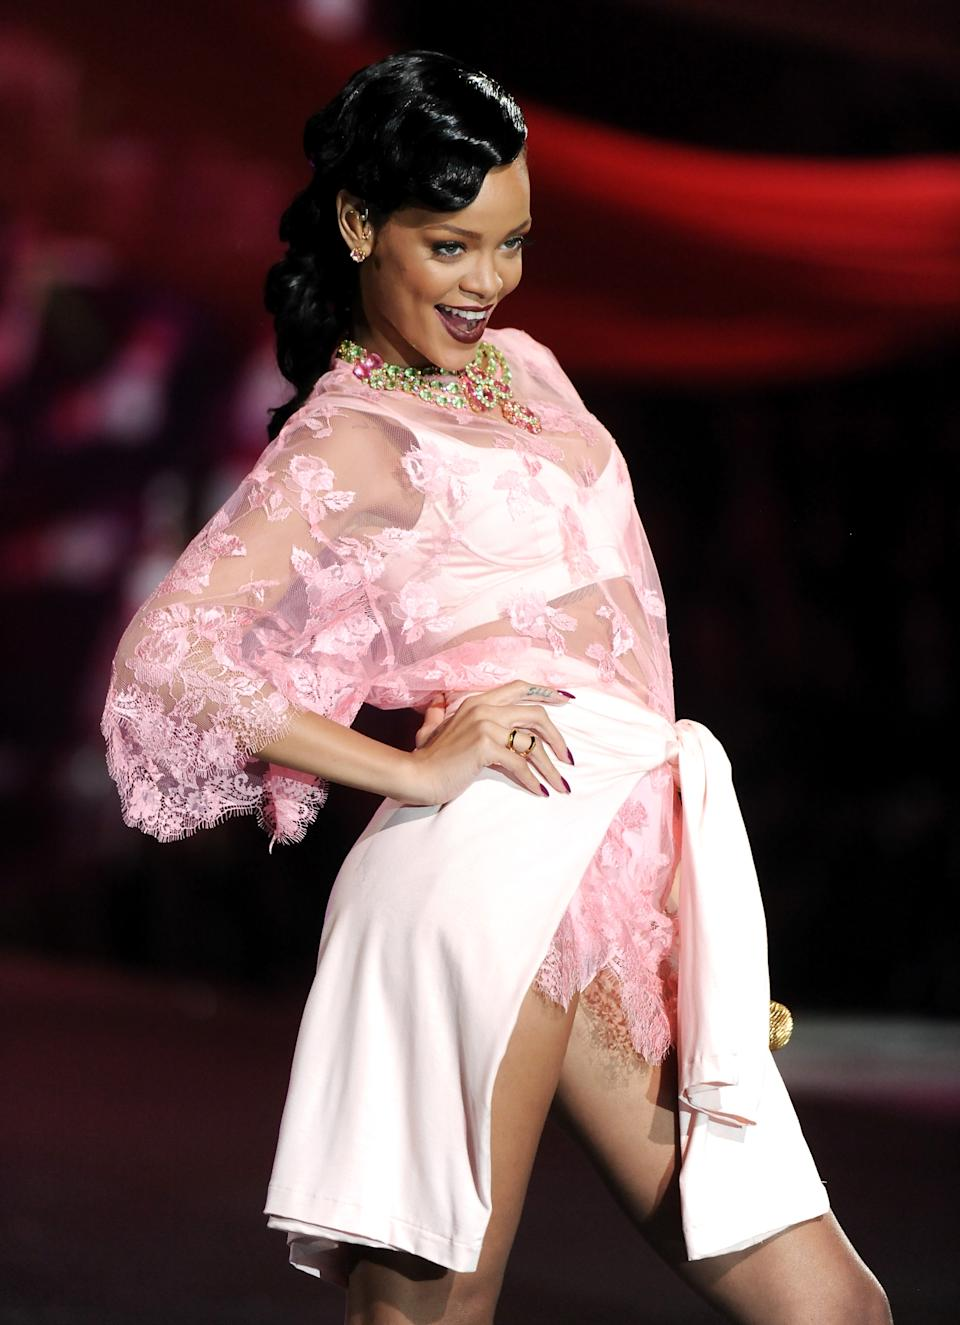 Singer Rihanna performs during the 2012 Victoria's Secret Fashion Show on Wednesday Nov. 7, 2012 in New York. The show will be Broadcast on Tuesday, Dec. 4 (10:00 PM, ET/PT) on CBS. (Photo by Evan Agostini/Invision/AP)